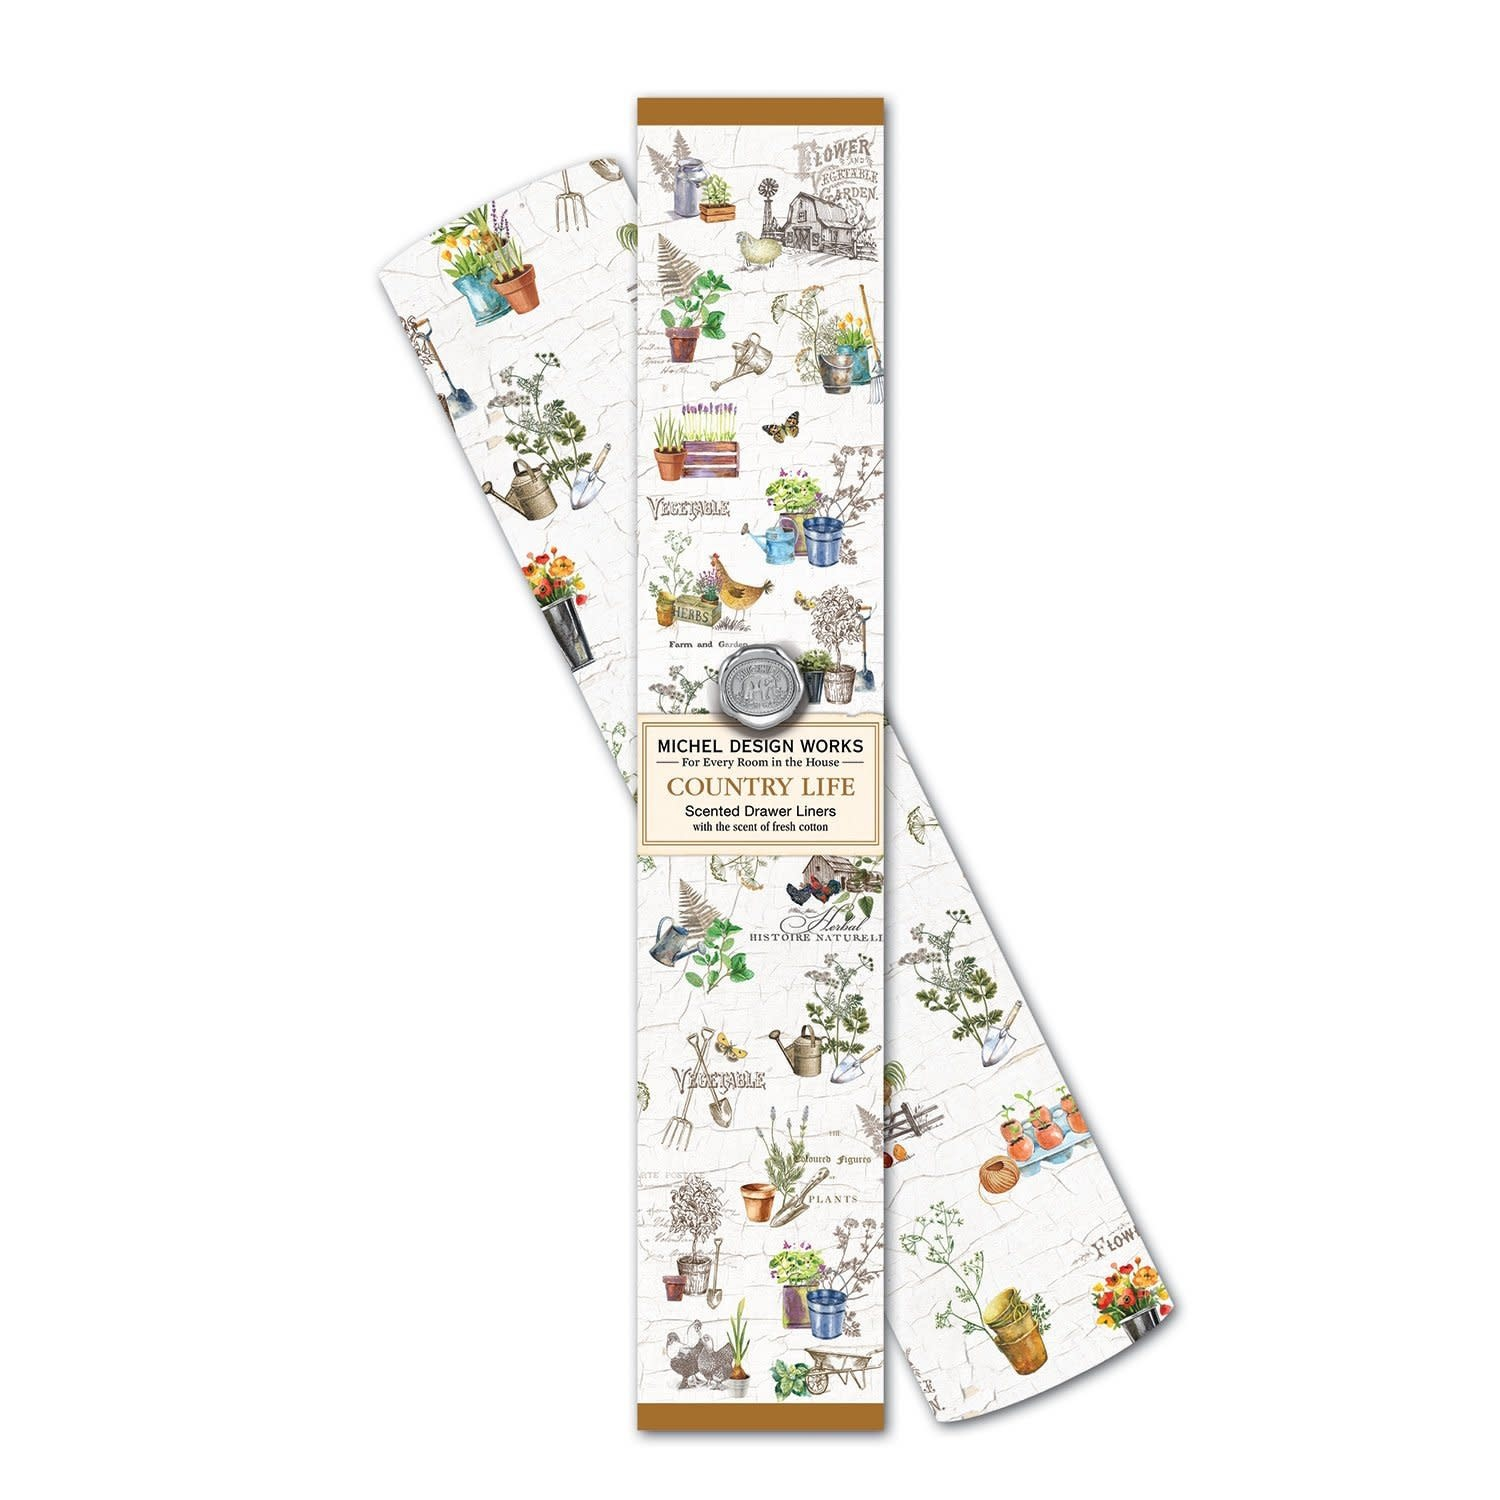 Michel Design Works Country Life Drawer Liner